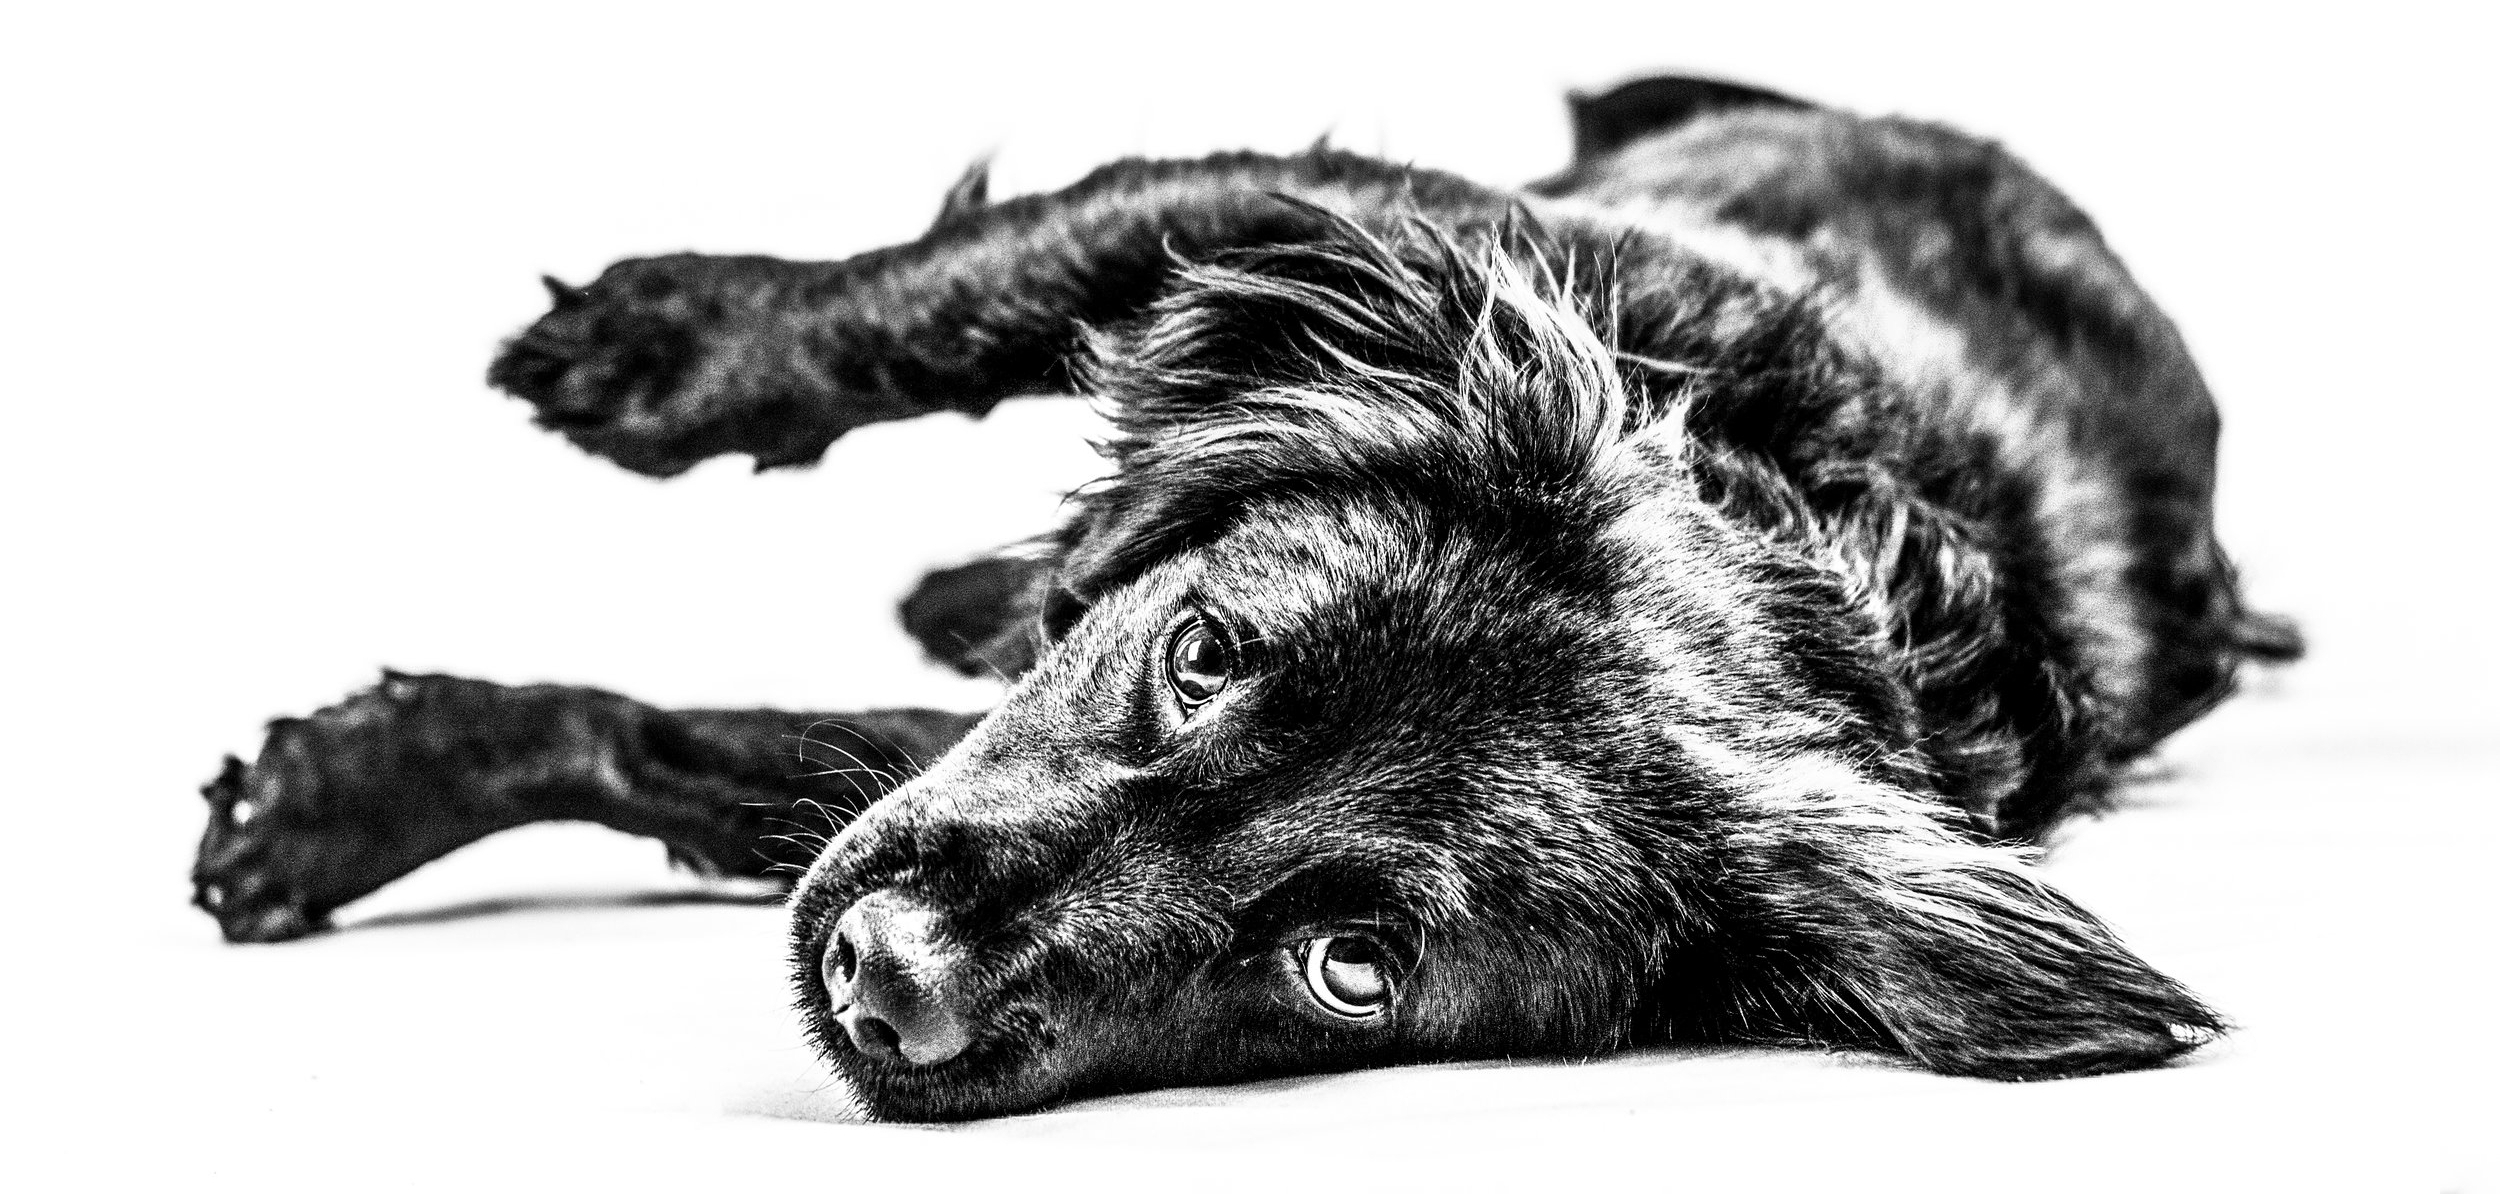 Black and White Image of Rescue Dog by Professional Photographer - Brent D'Silva